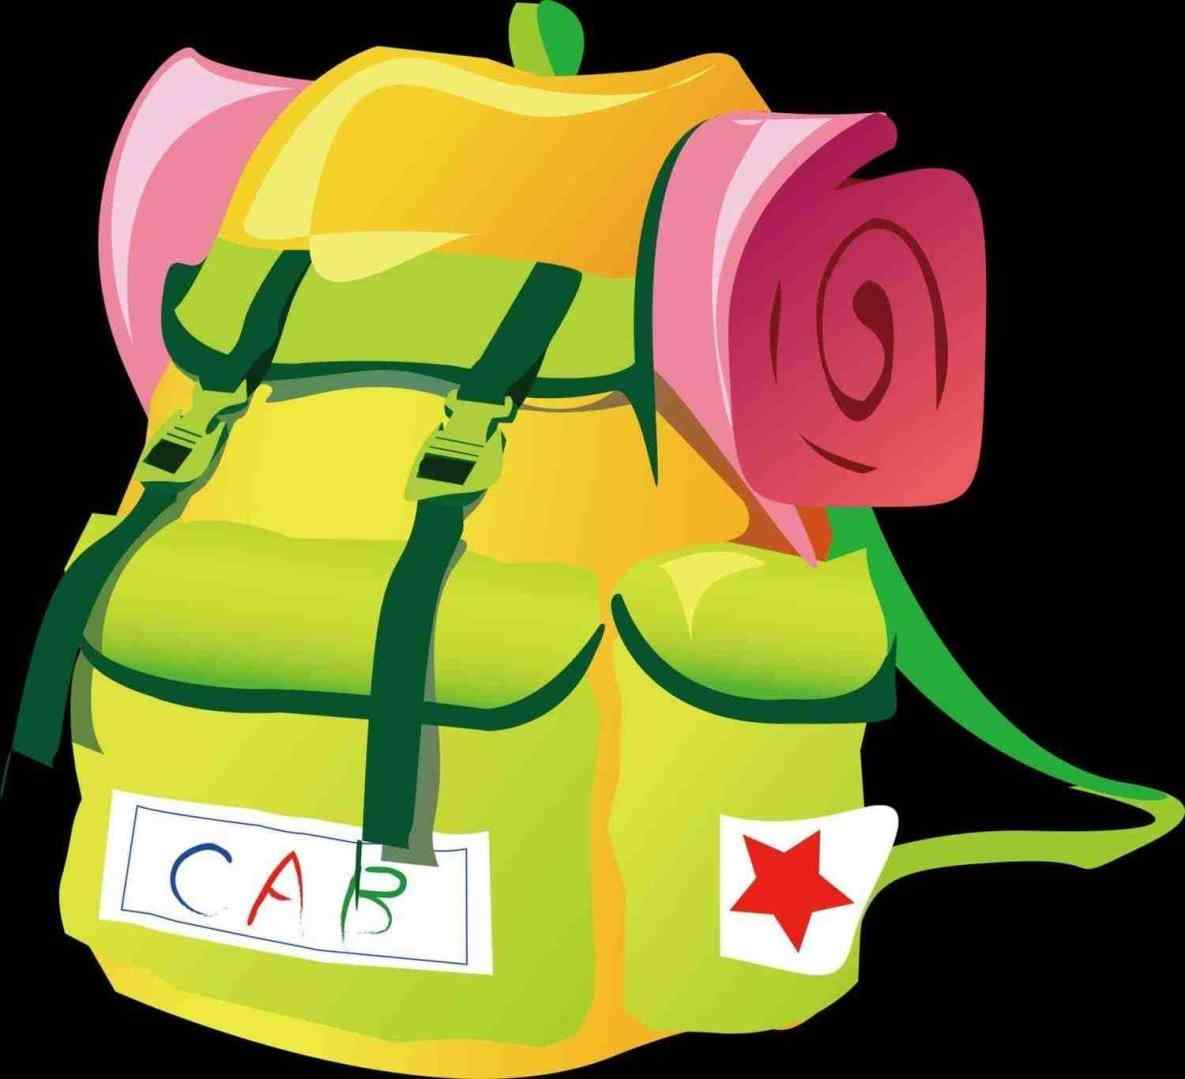 Bag clipart camp. Camping tentco win art